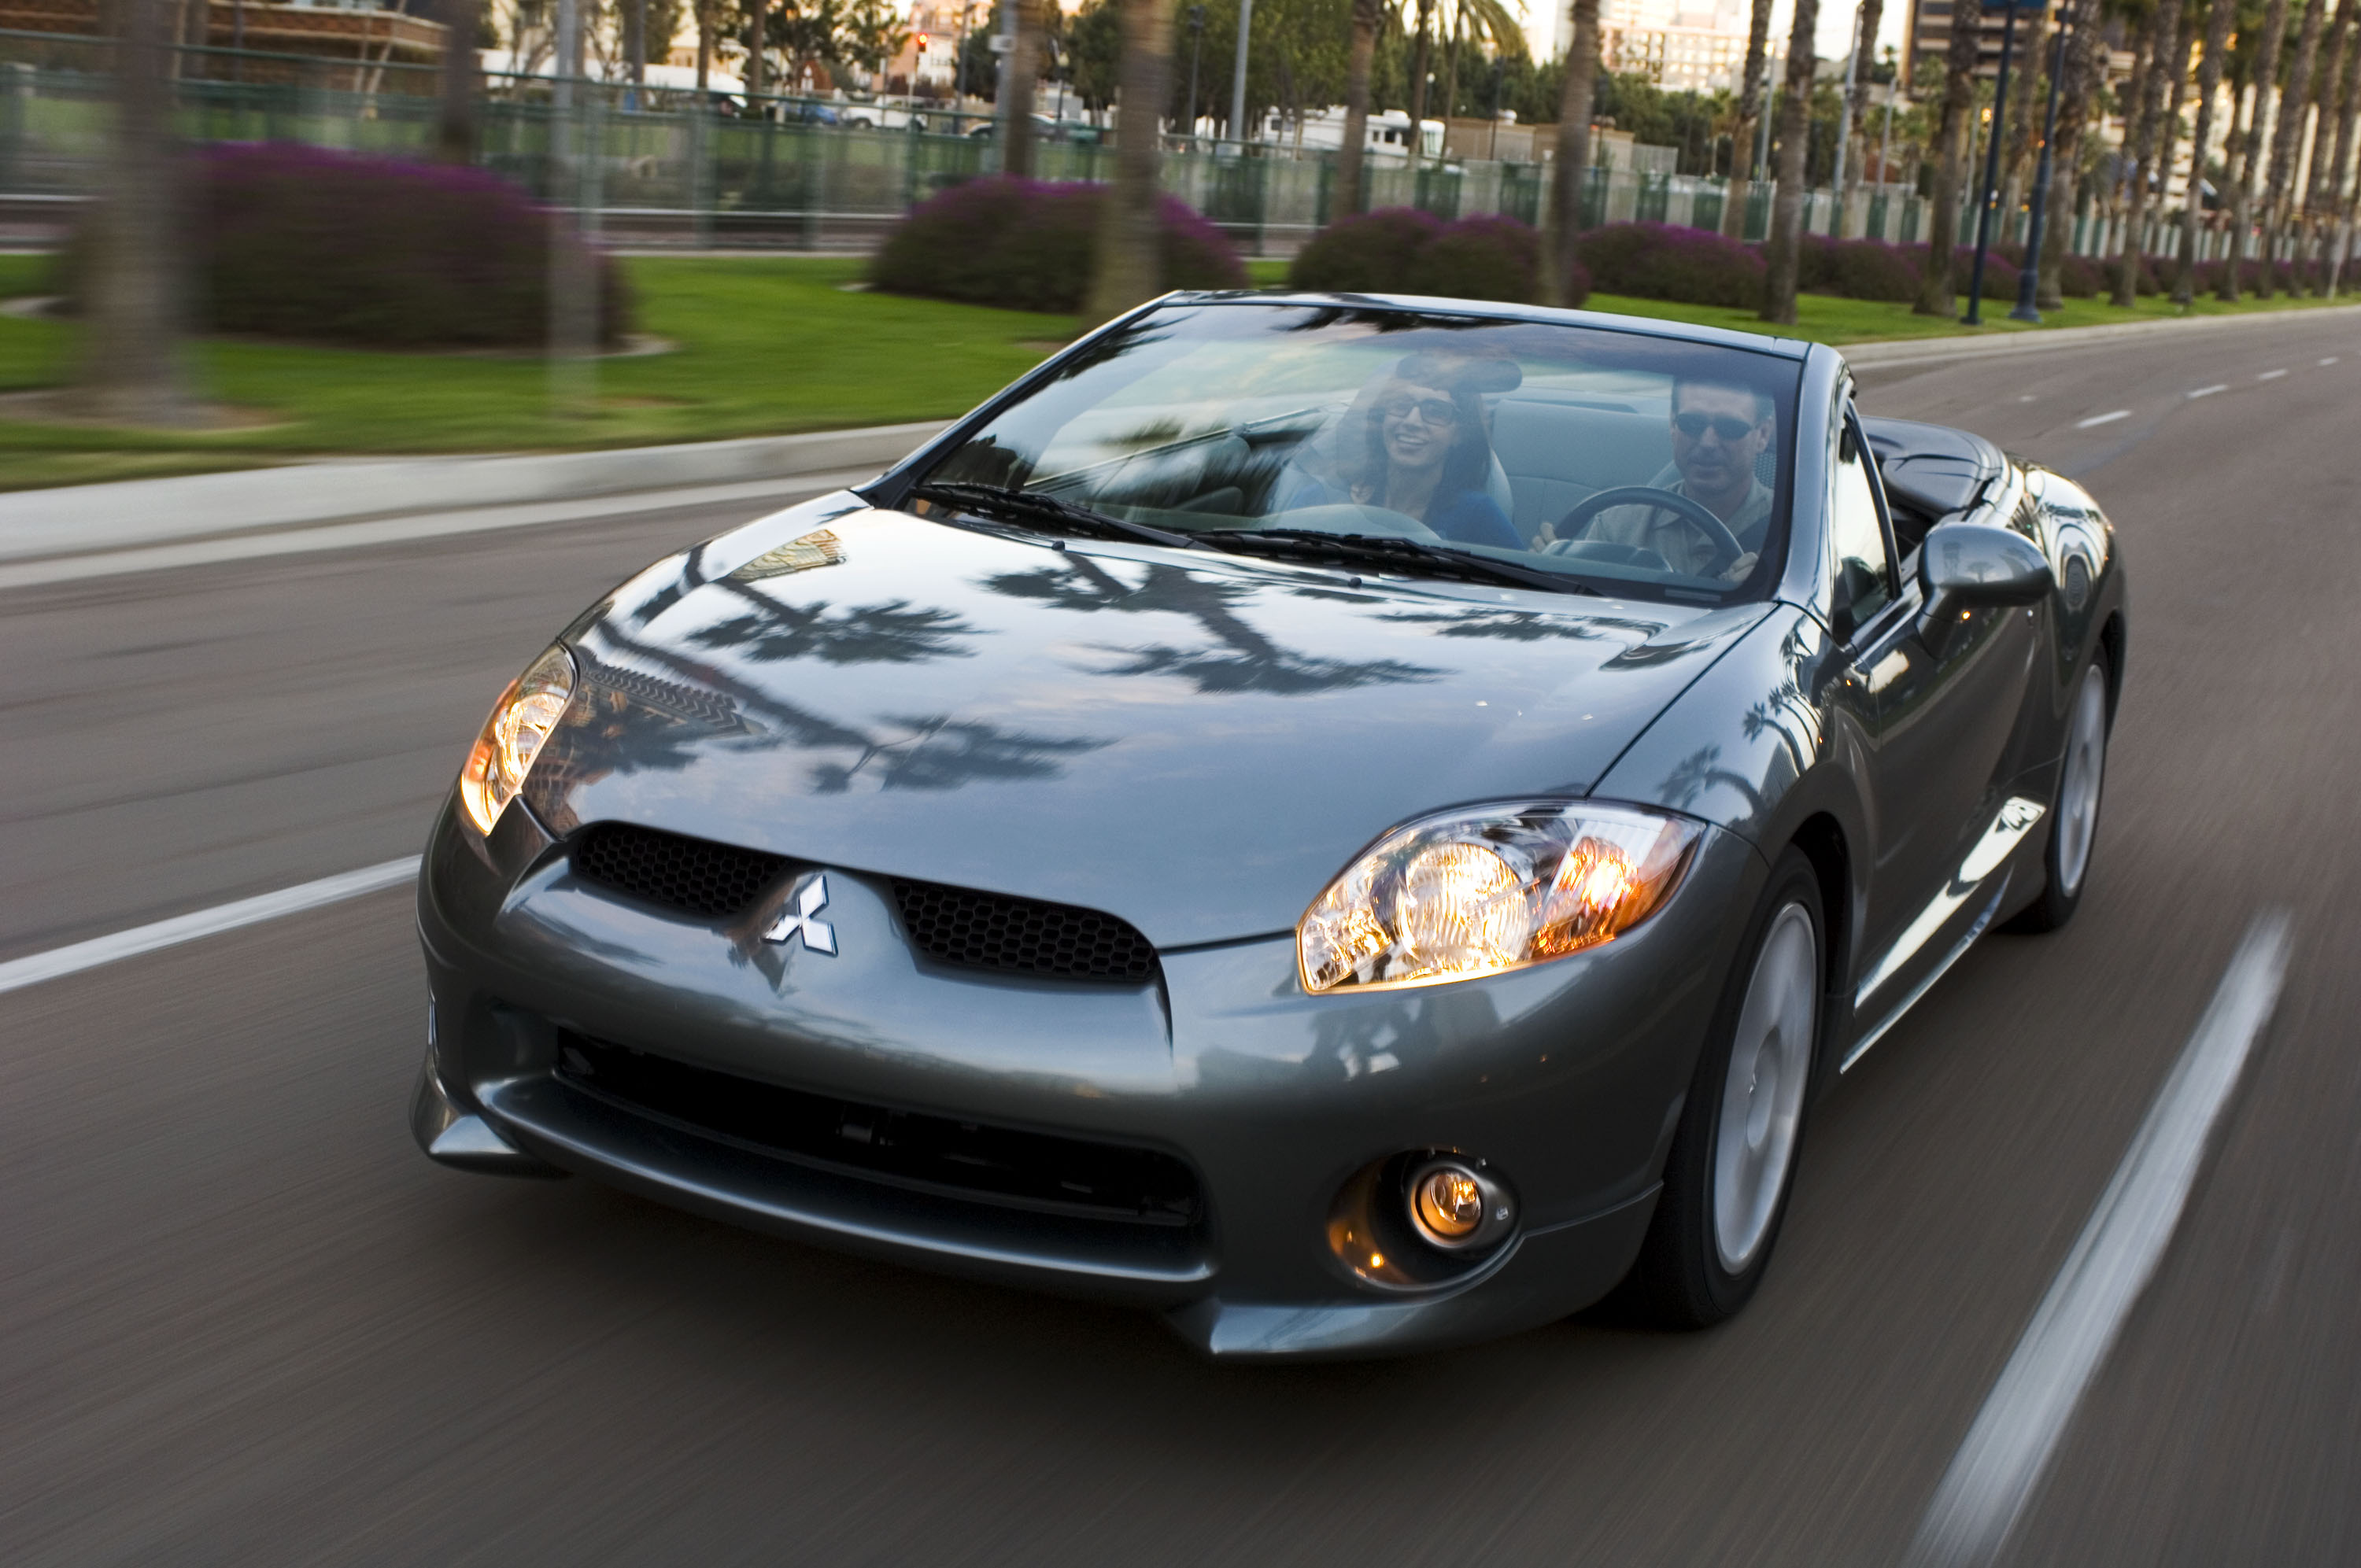 2008 Mitsubishi Eclipse Spyder Hd Pictures Gt Interior Thumbnail Photo 30675